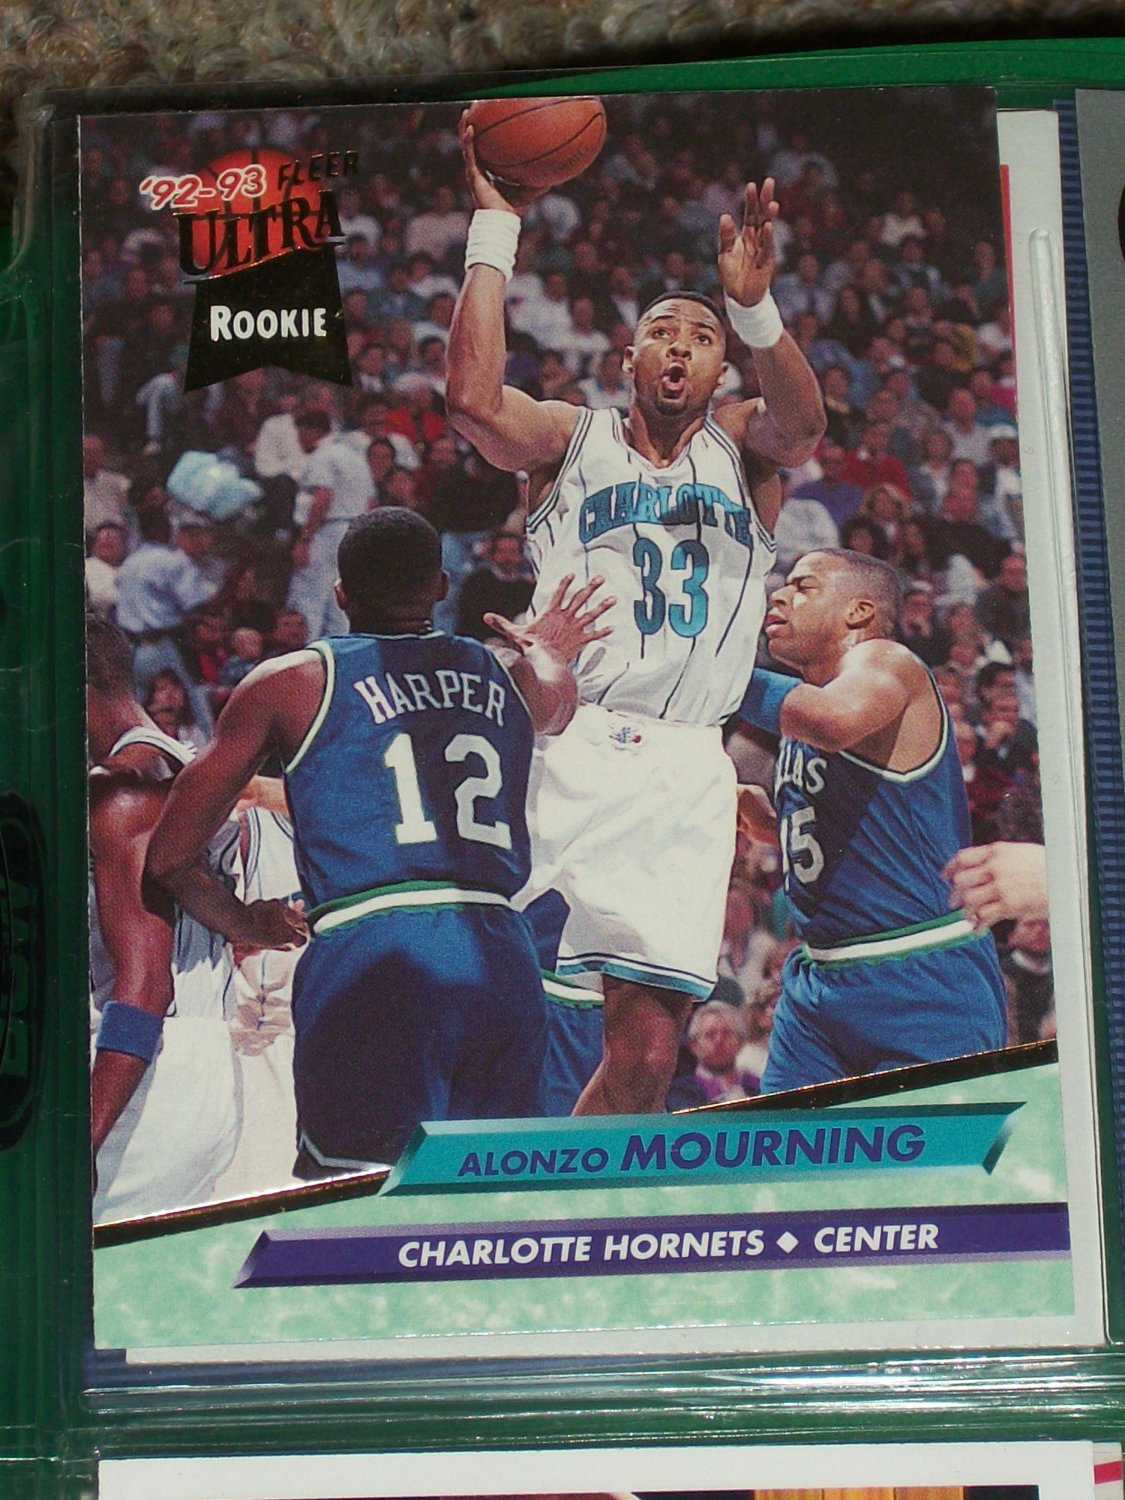 alonzo mourning 9293 fleer ultra rookie basketball card